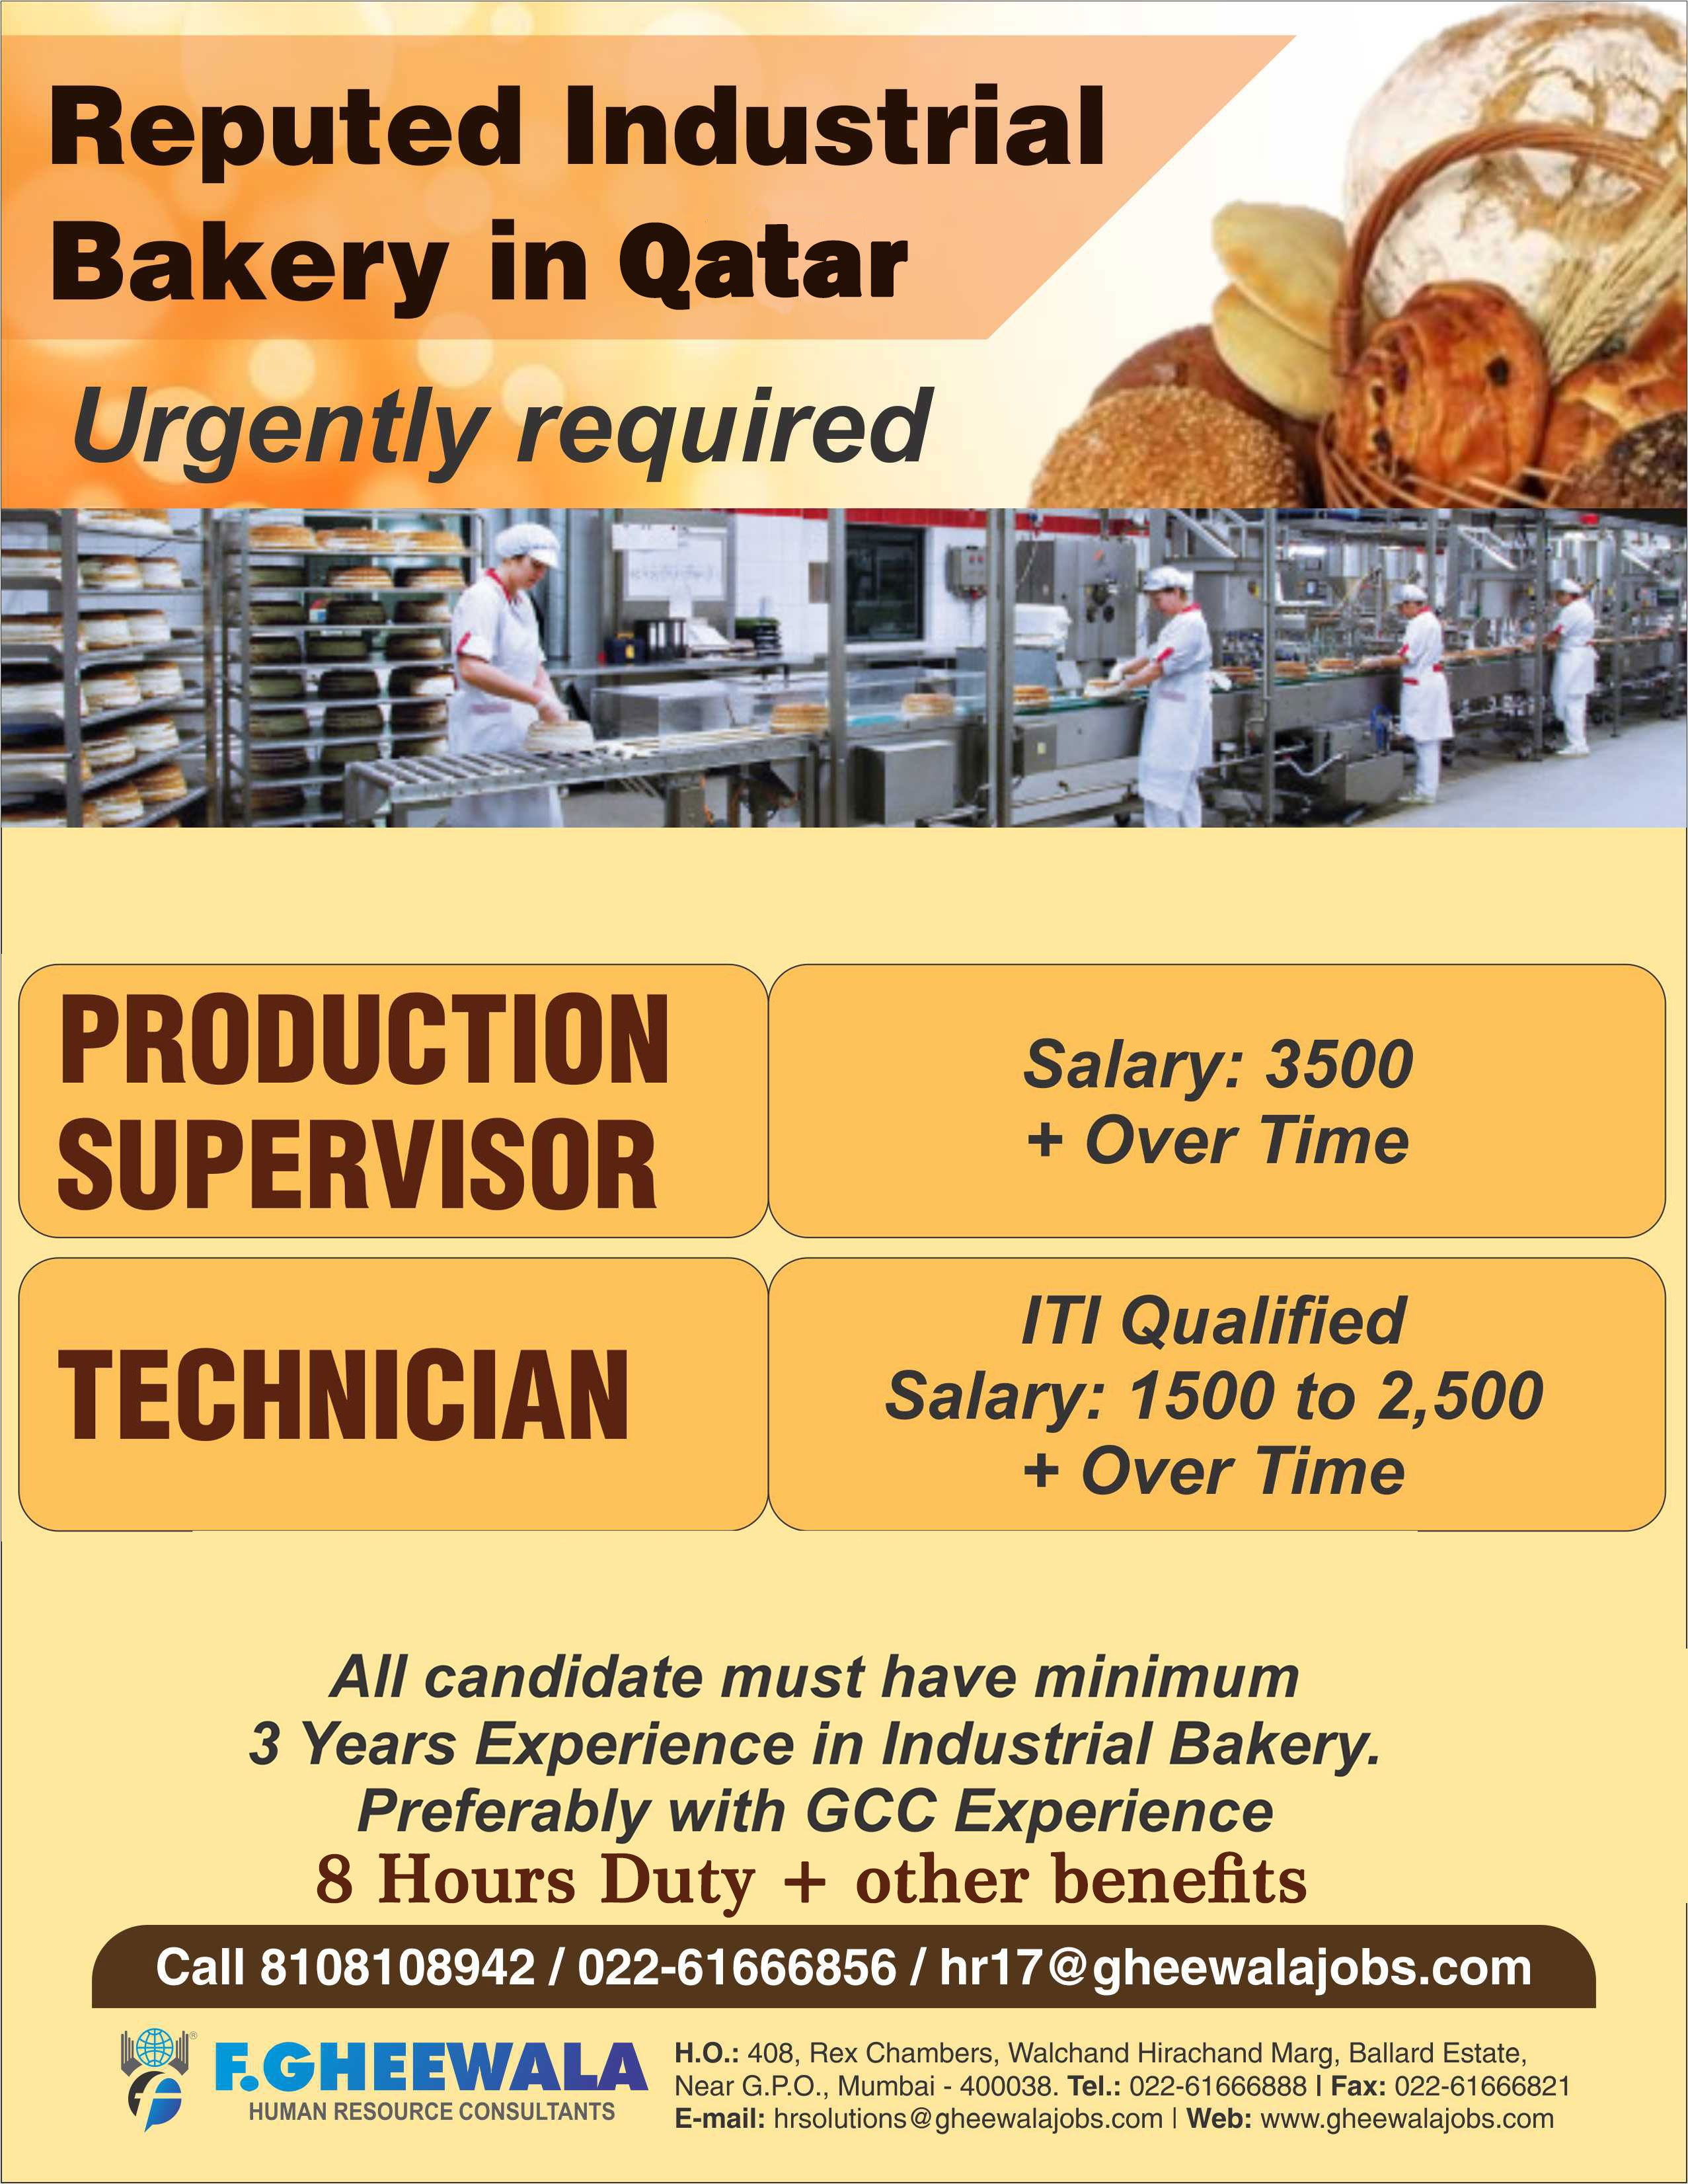 urgently required production supervisor technician for reputed industrial bakery in qatar please see the